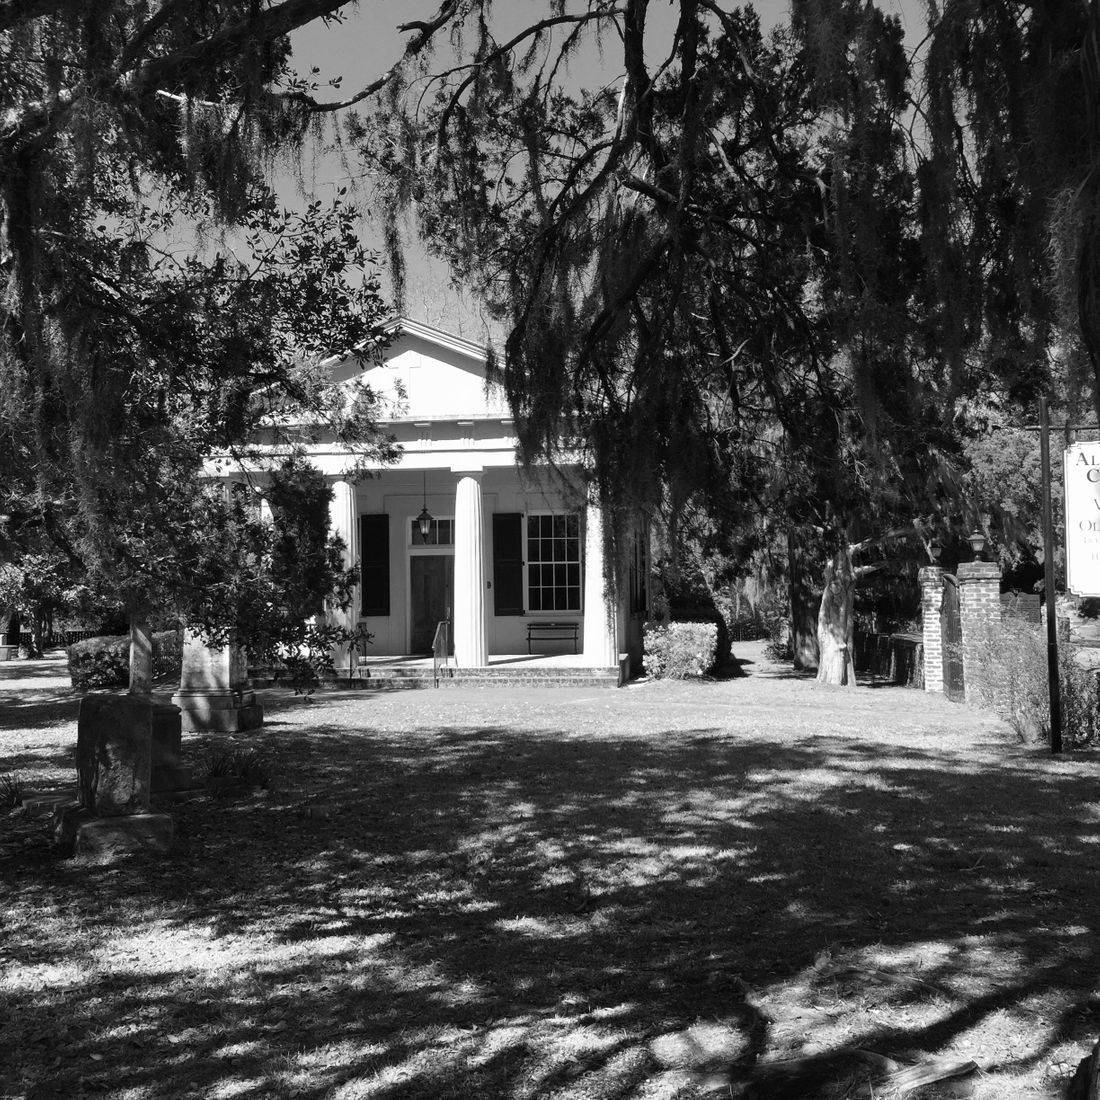 Gardens, Church, Cemetery, Pawleys Island, South Carolina, Building, Trees